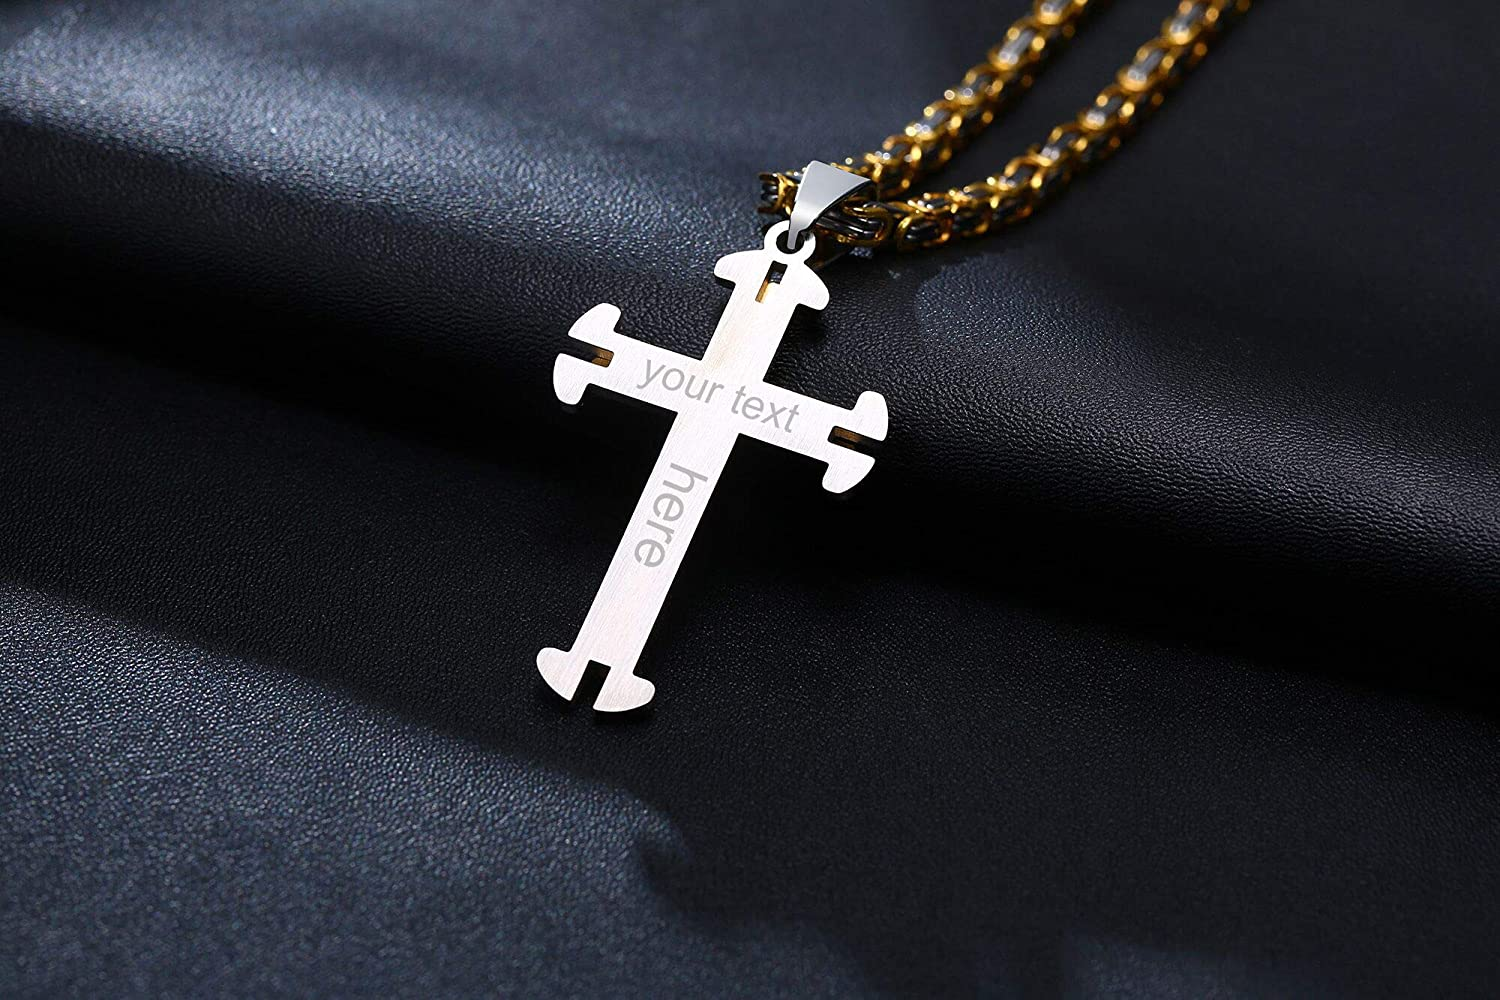 Stainless Steel Brushed and Polished Black IP Plated Religious Faith Cross Necklace 22 Inch Jewelry Gifts for Women